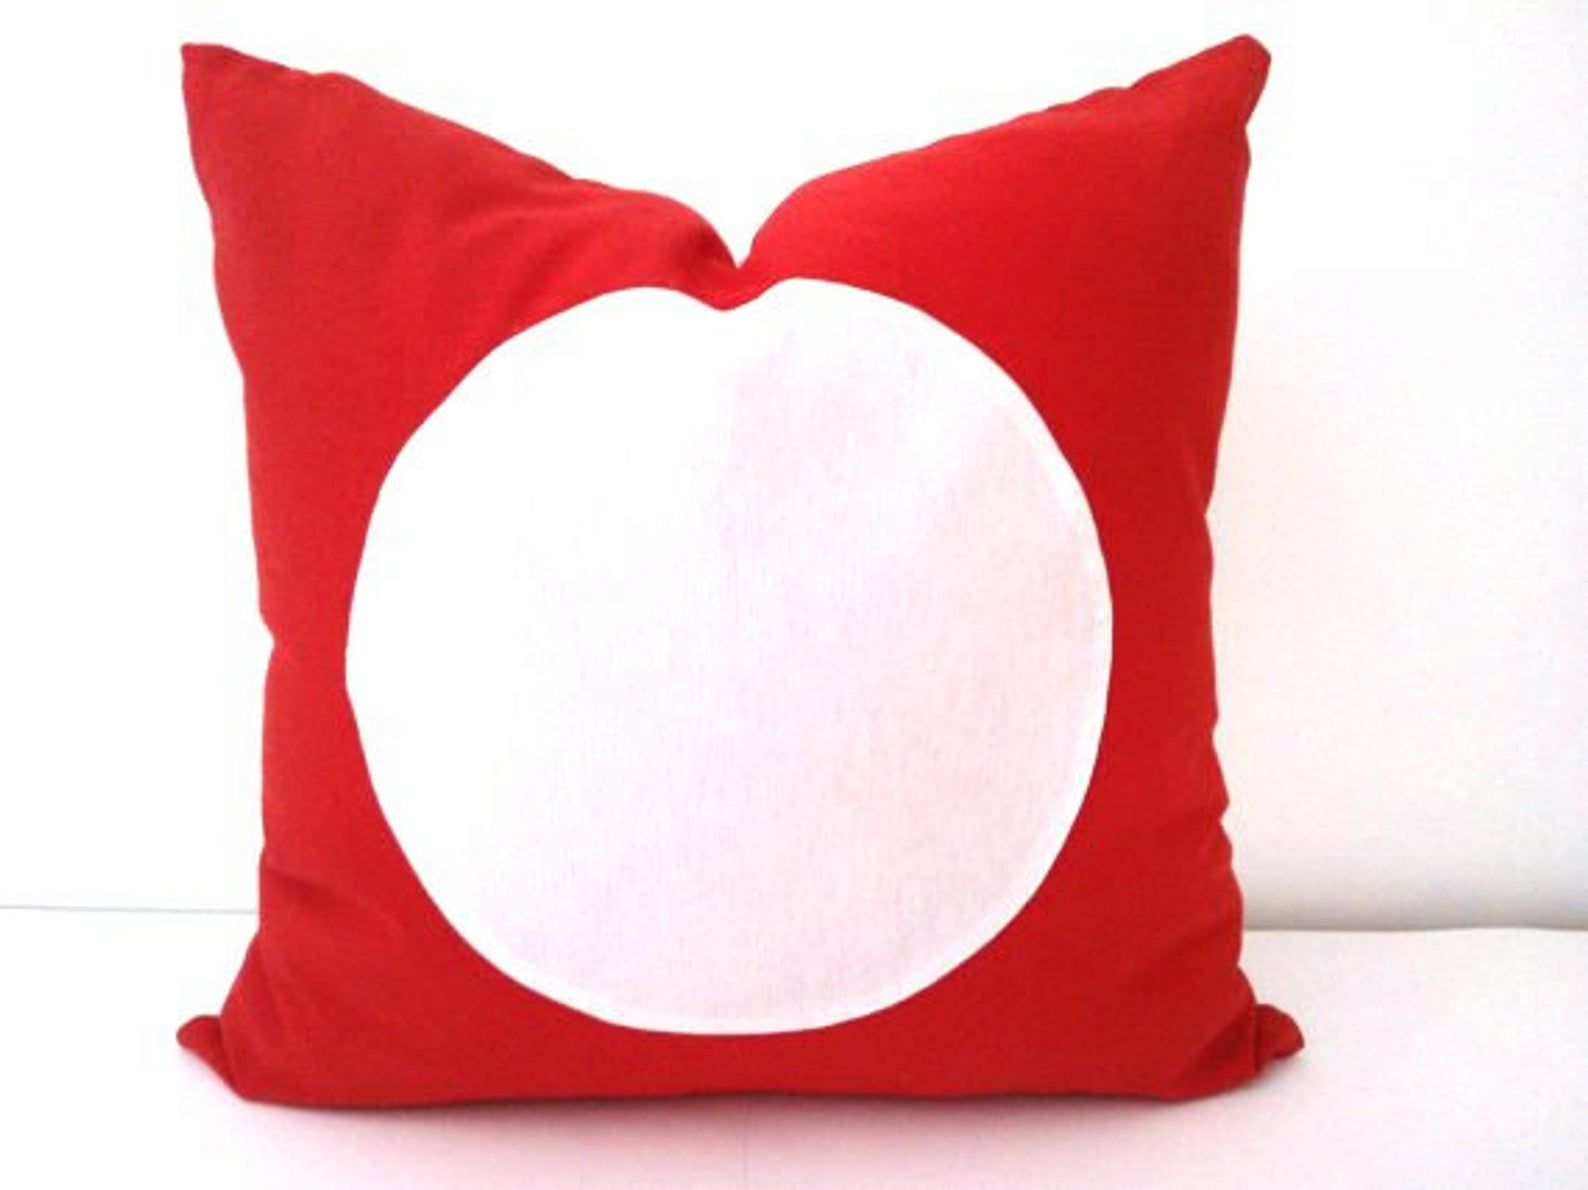 Red Throw Pillow Cover With White Circle Geometric Circle Cushion Housse De Coussin Coussin Rouge Coussin